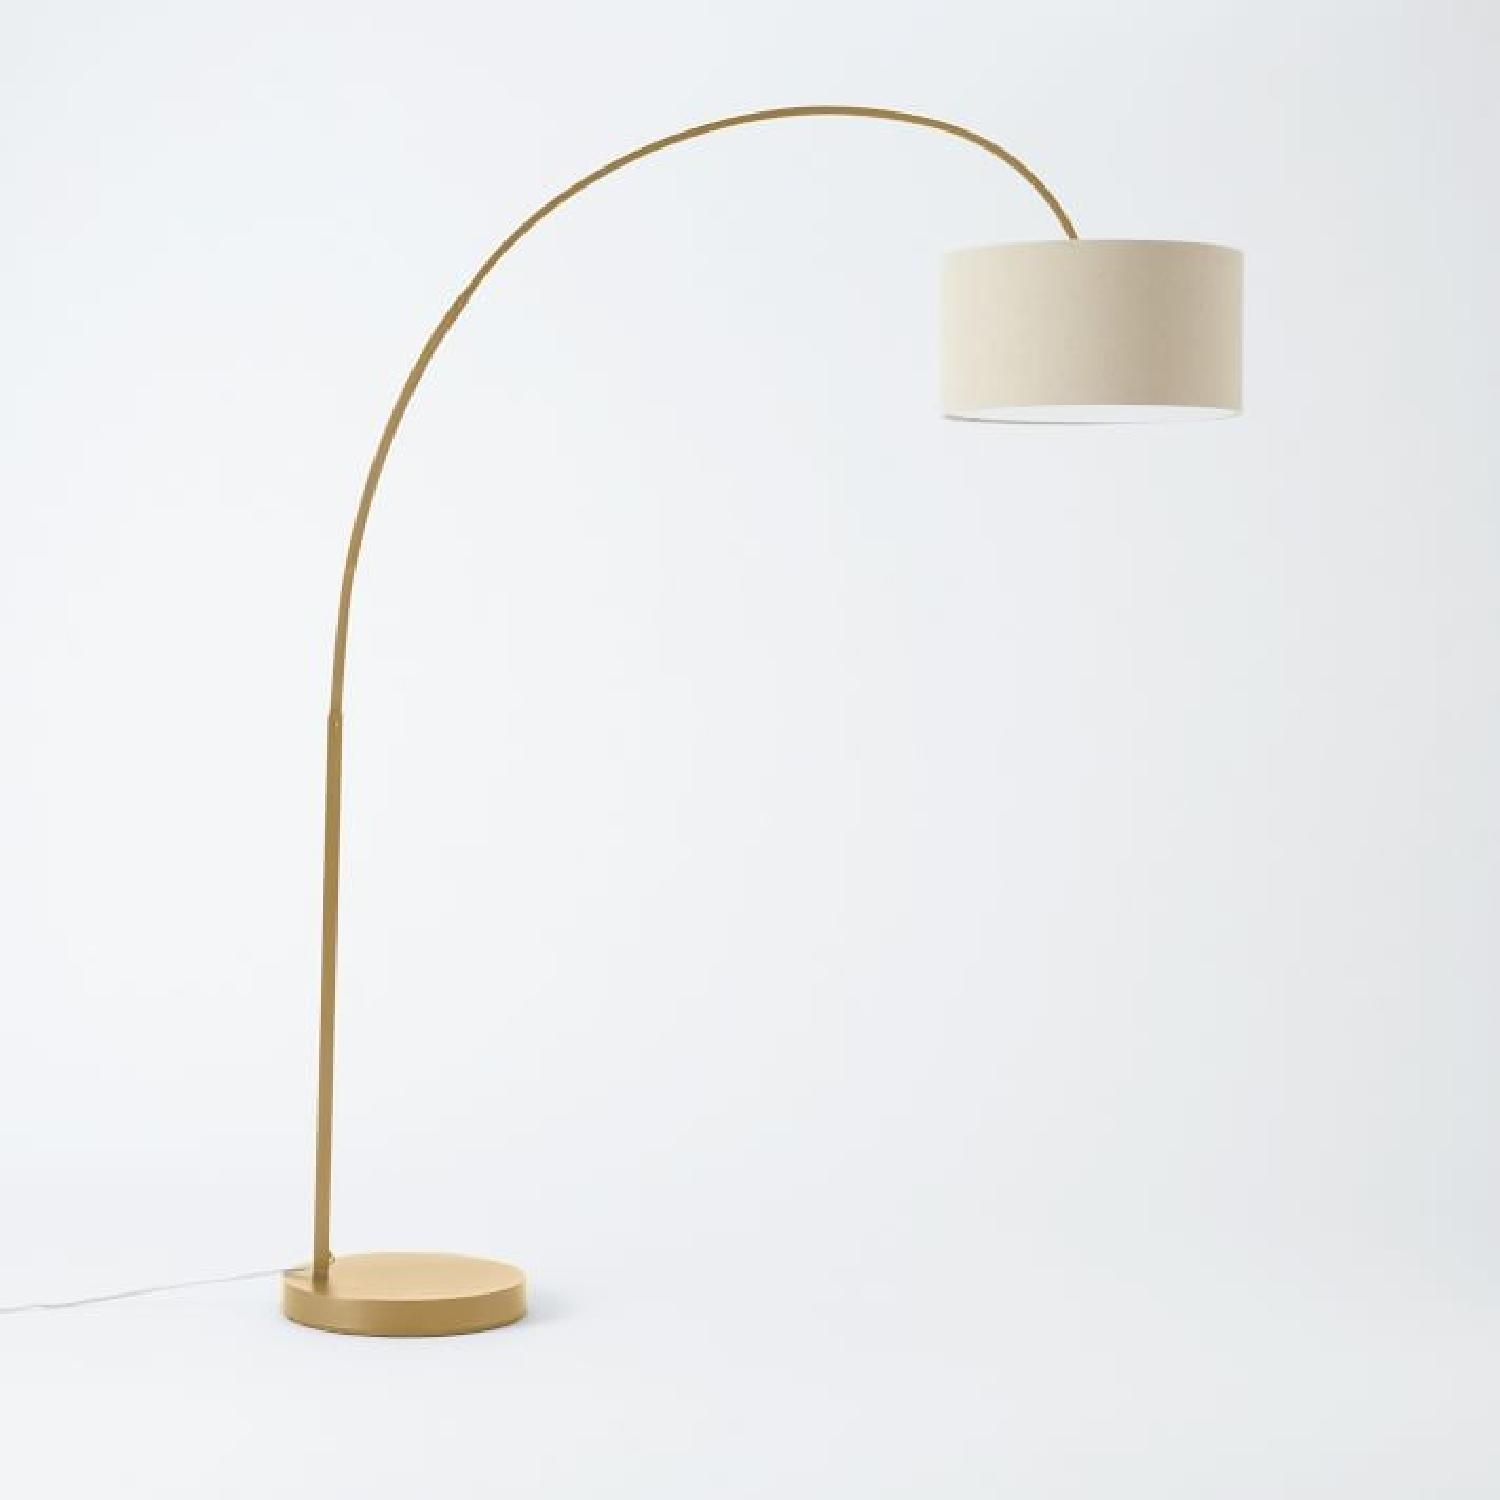 West Elm Overarching Floor Lamp in Antique Brass - image-3